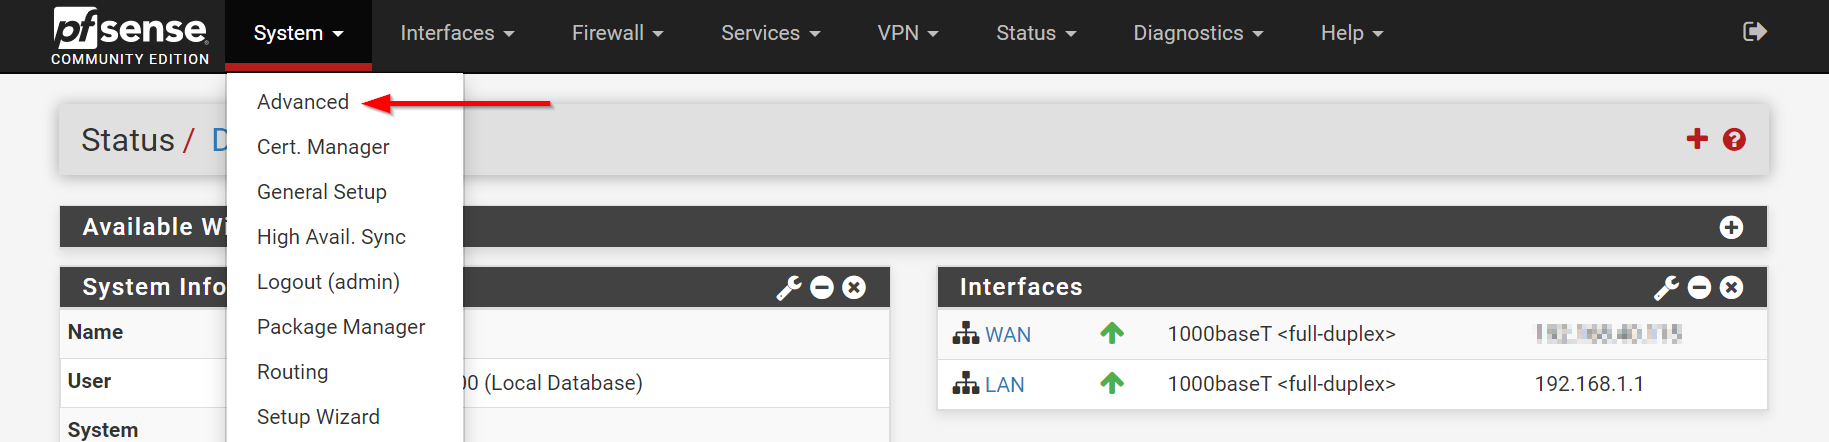 pfsense system advanced